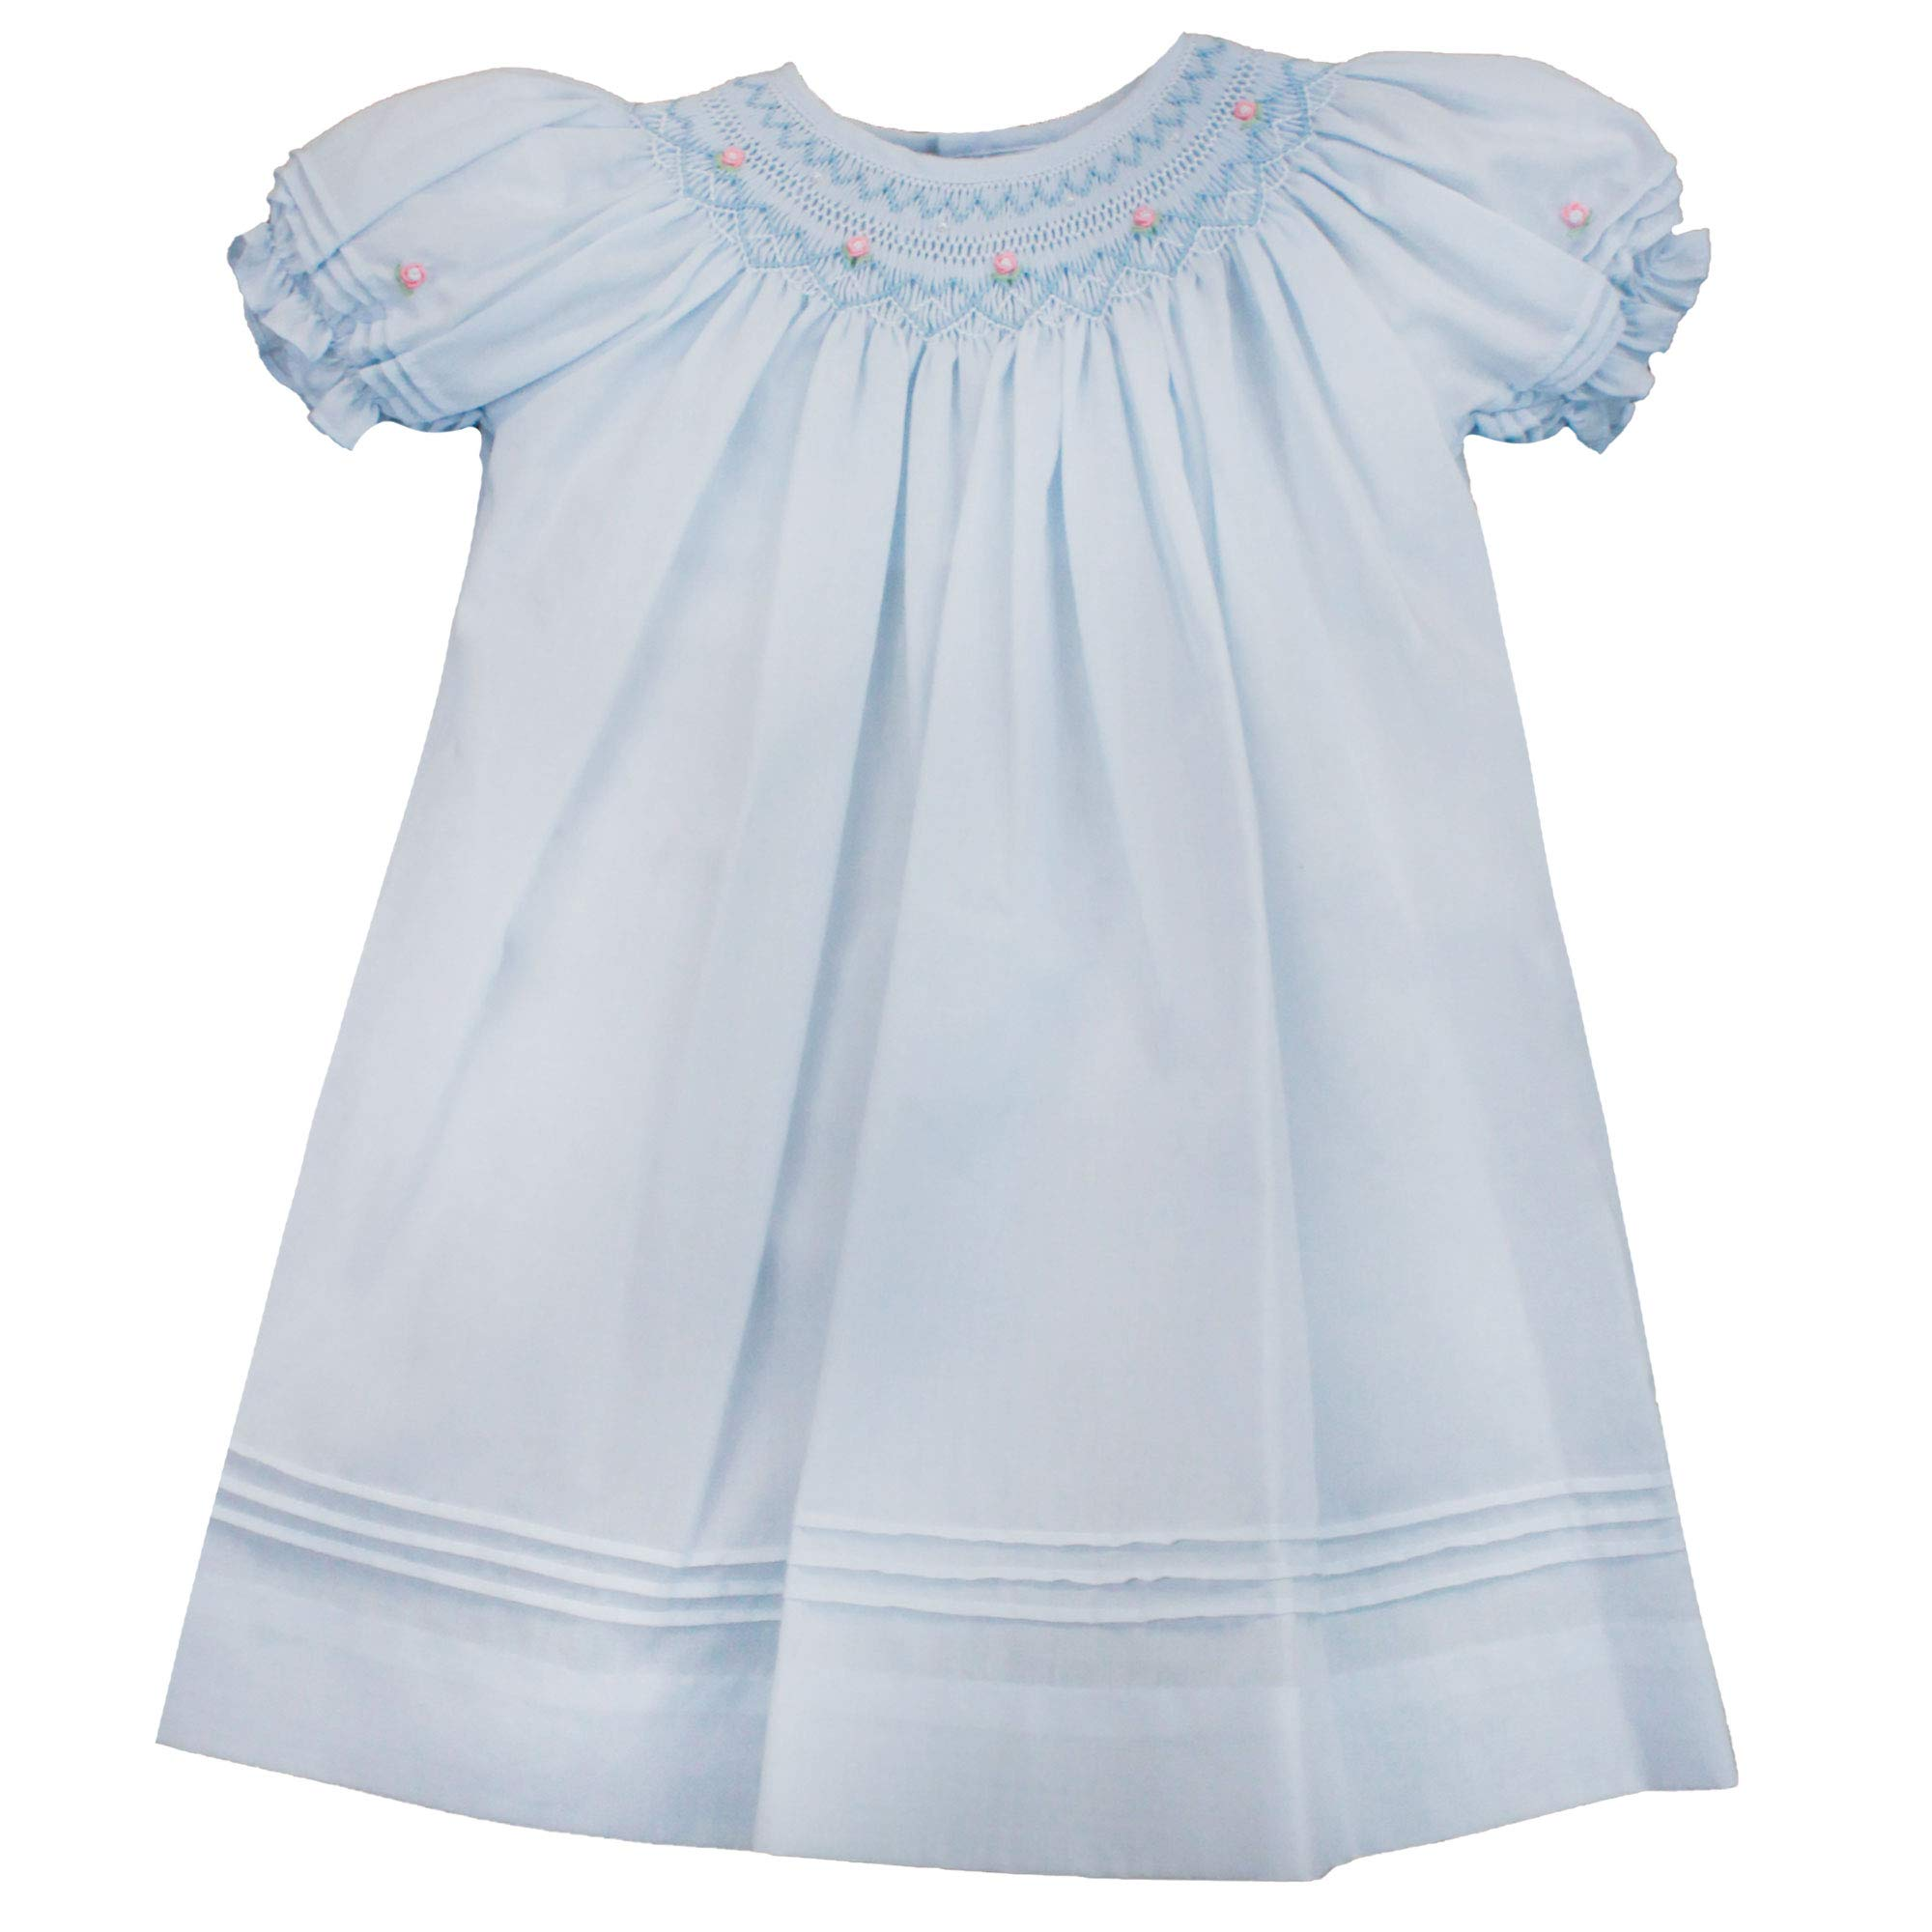 Petit Ami Baby Girls' Daygown with Heart Smocking and Pearls, 3 Months, Blue